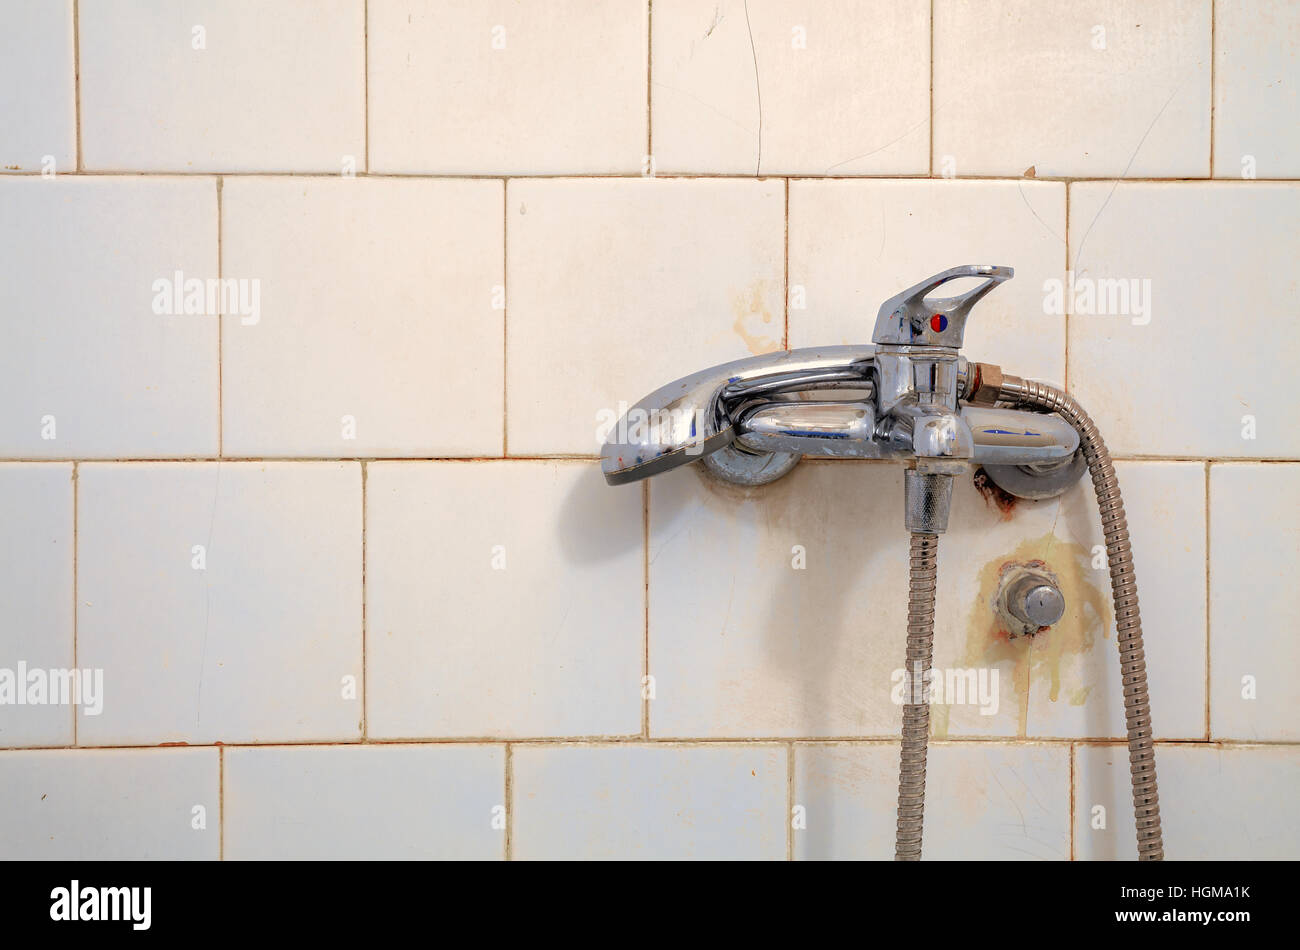 Bathroom Tiles Stock Photos & Bathroom Tiles Stock Images - Alamy